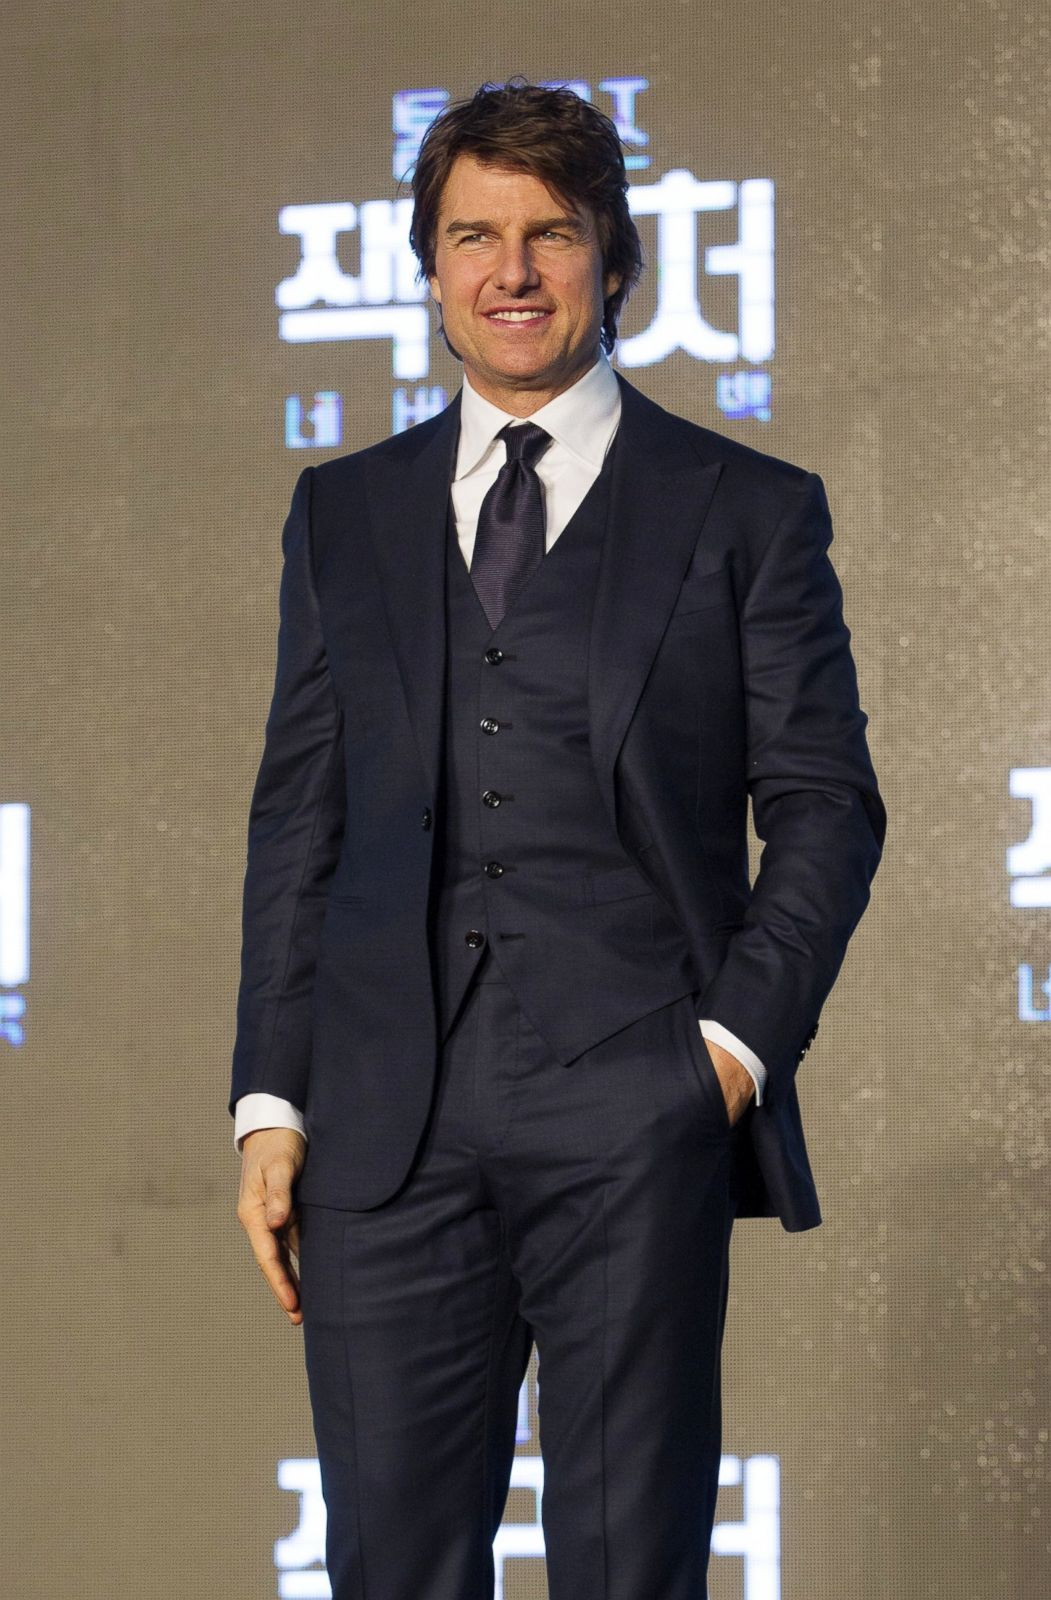 Tom Cruise Hits The Red Carpet In A Three Piece Suit